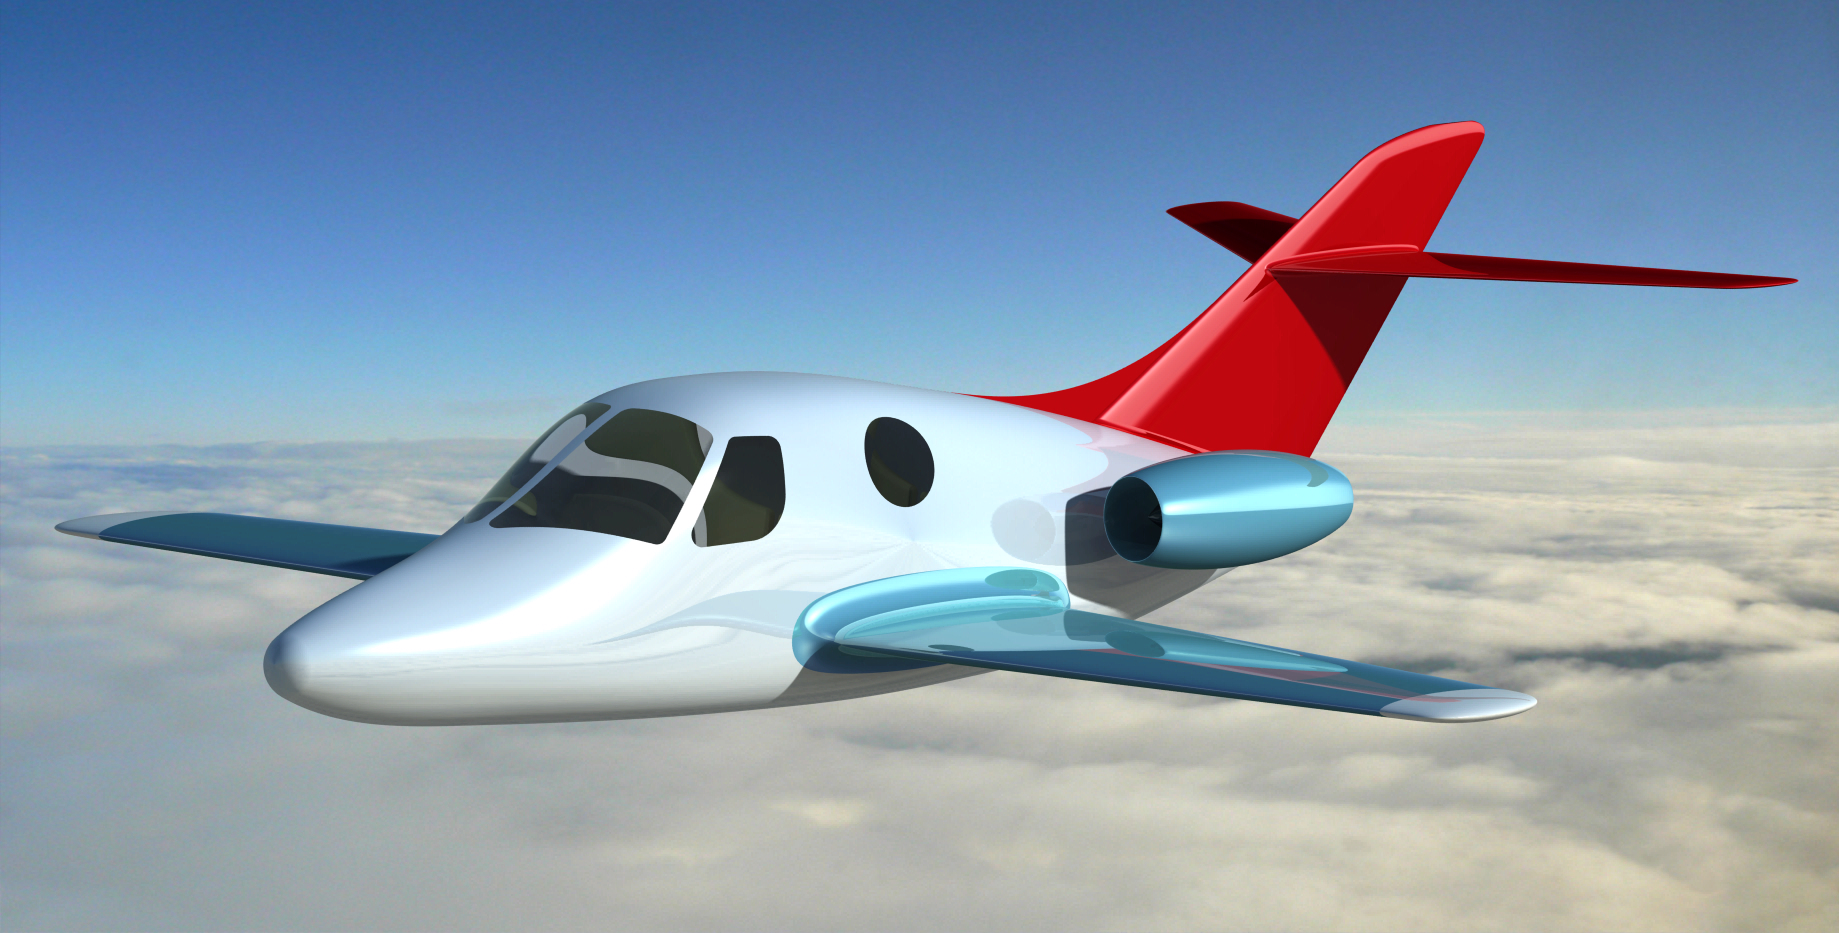 light weight jets Virgin flight for first new passenger jet series in decades.